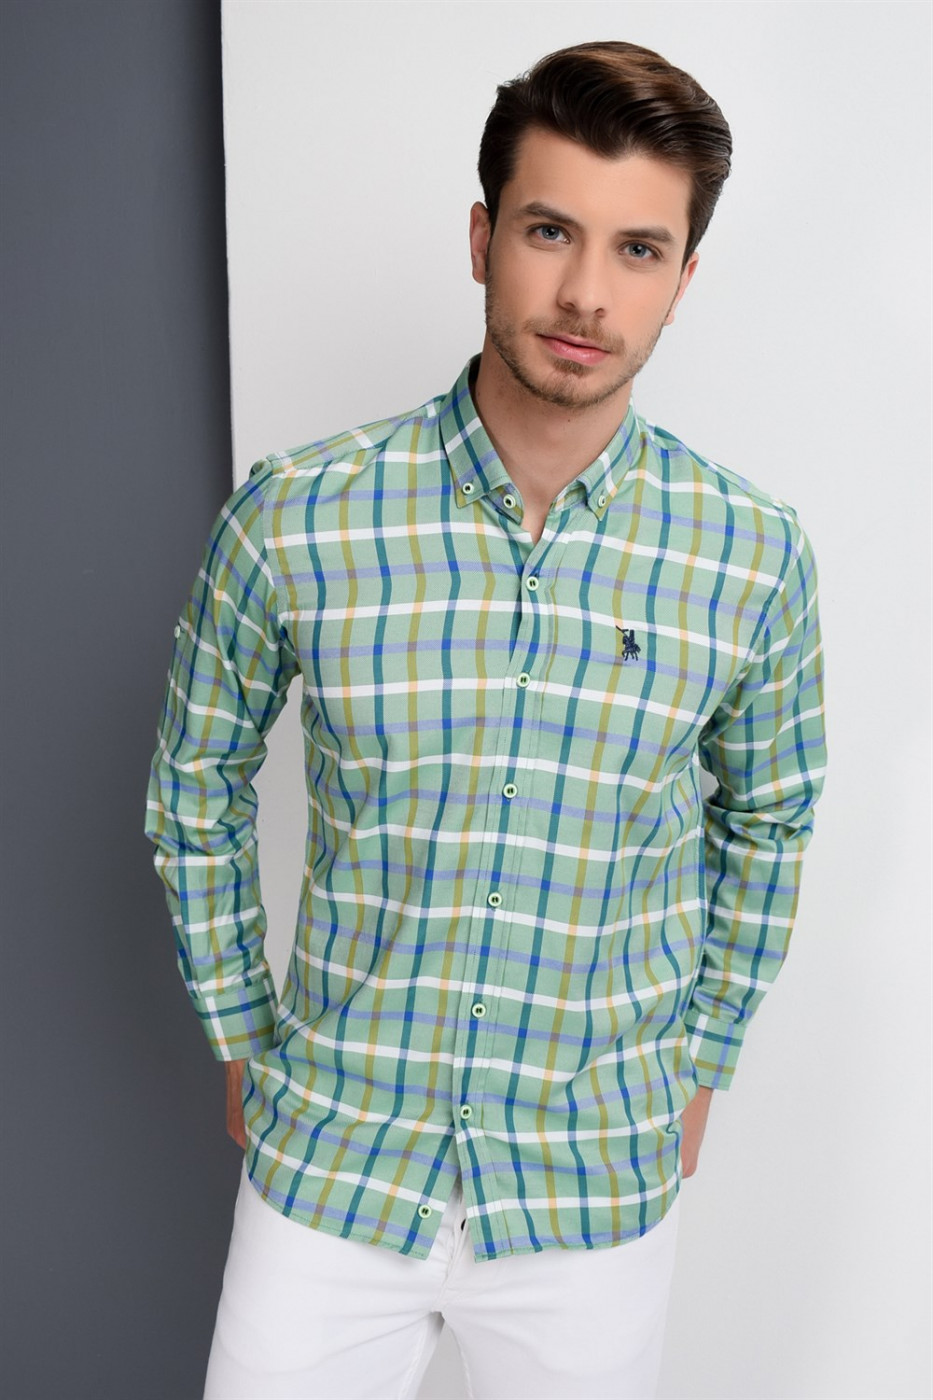 G664 DEWBERRY MEN's SHIRT-GREEN